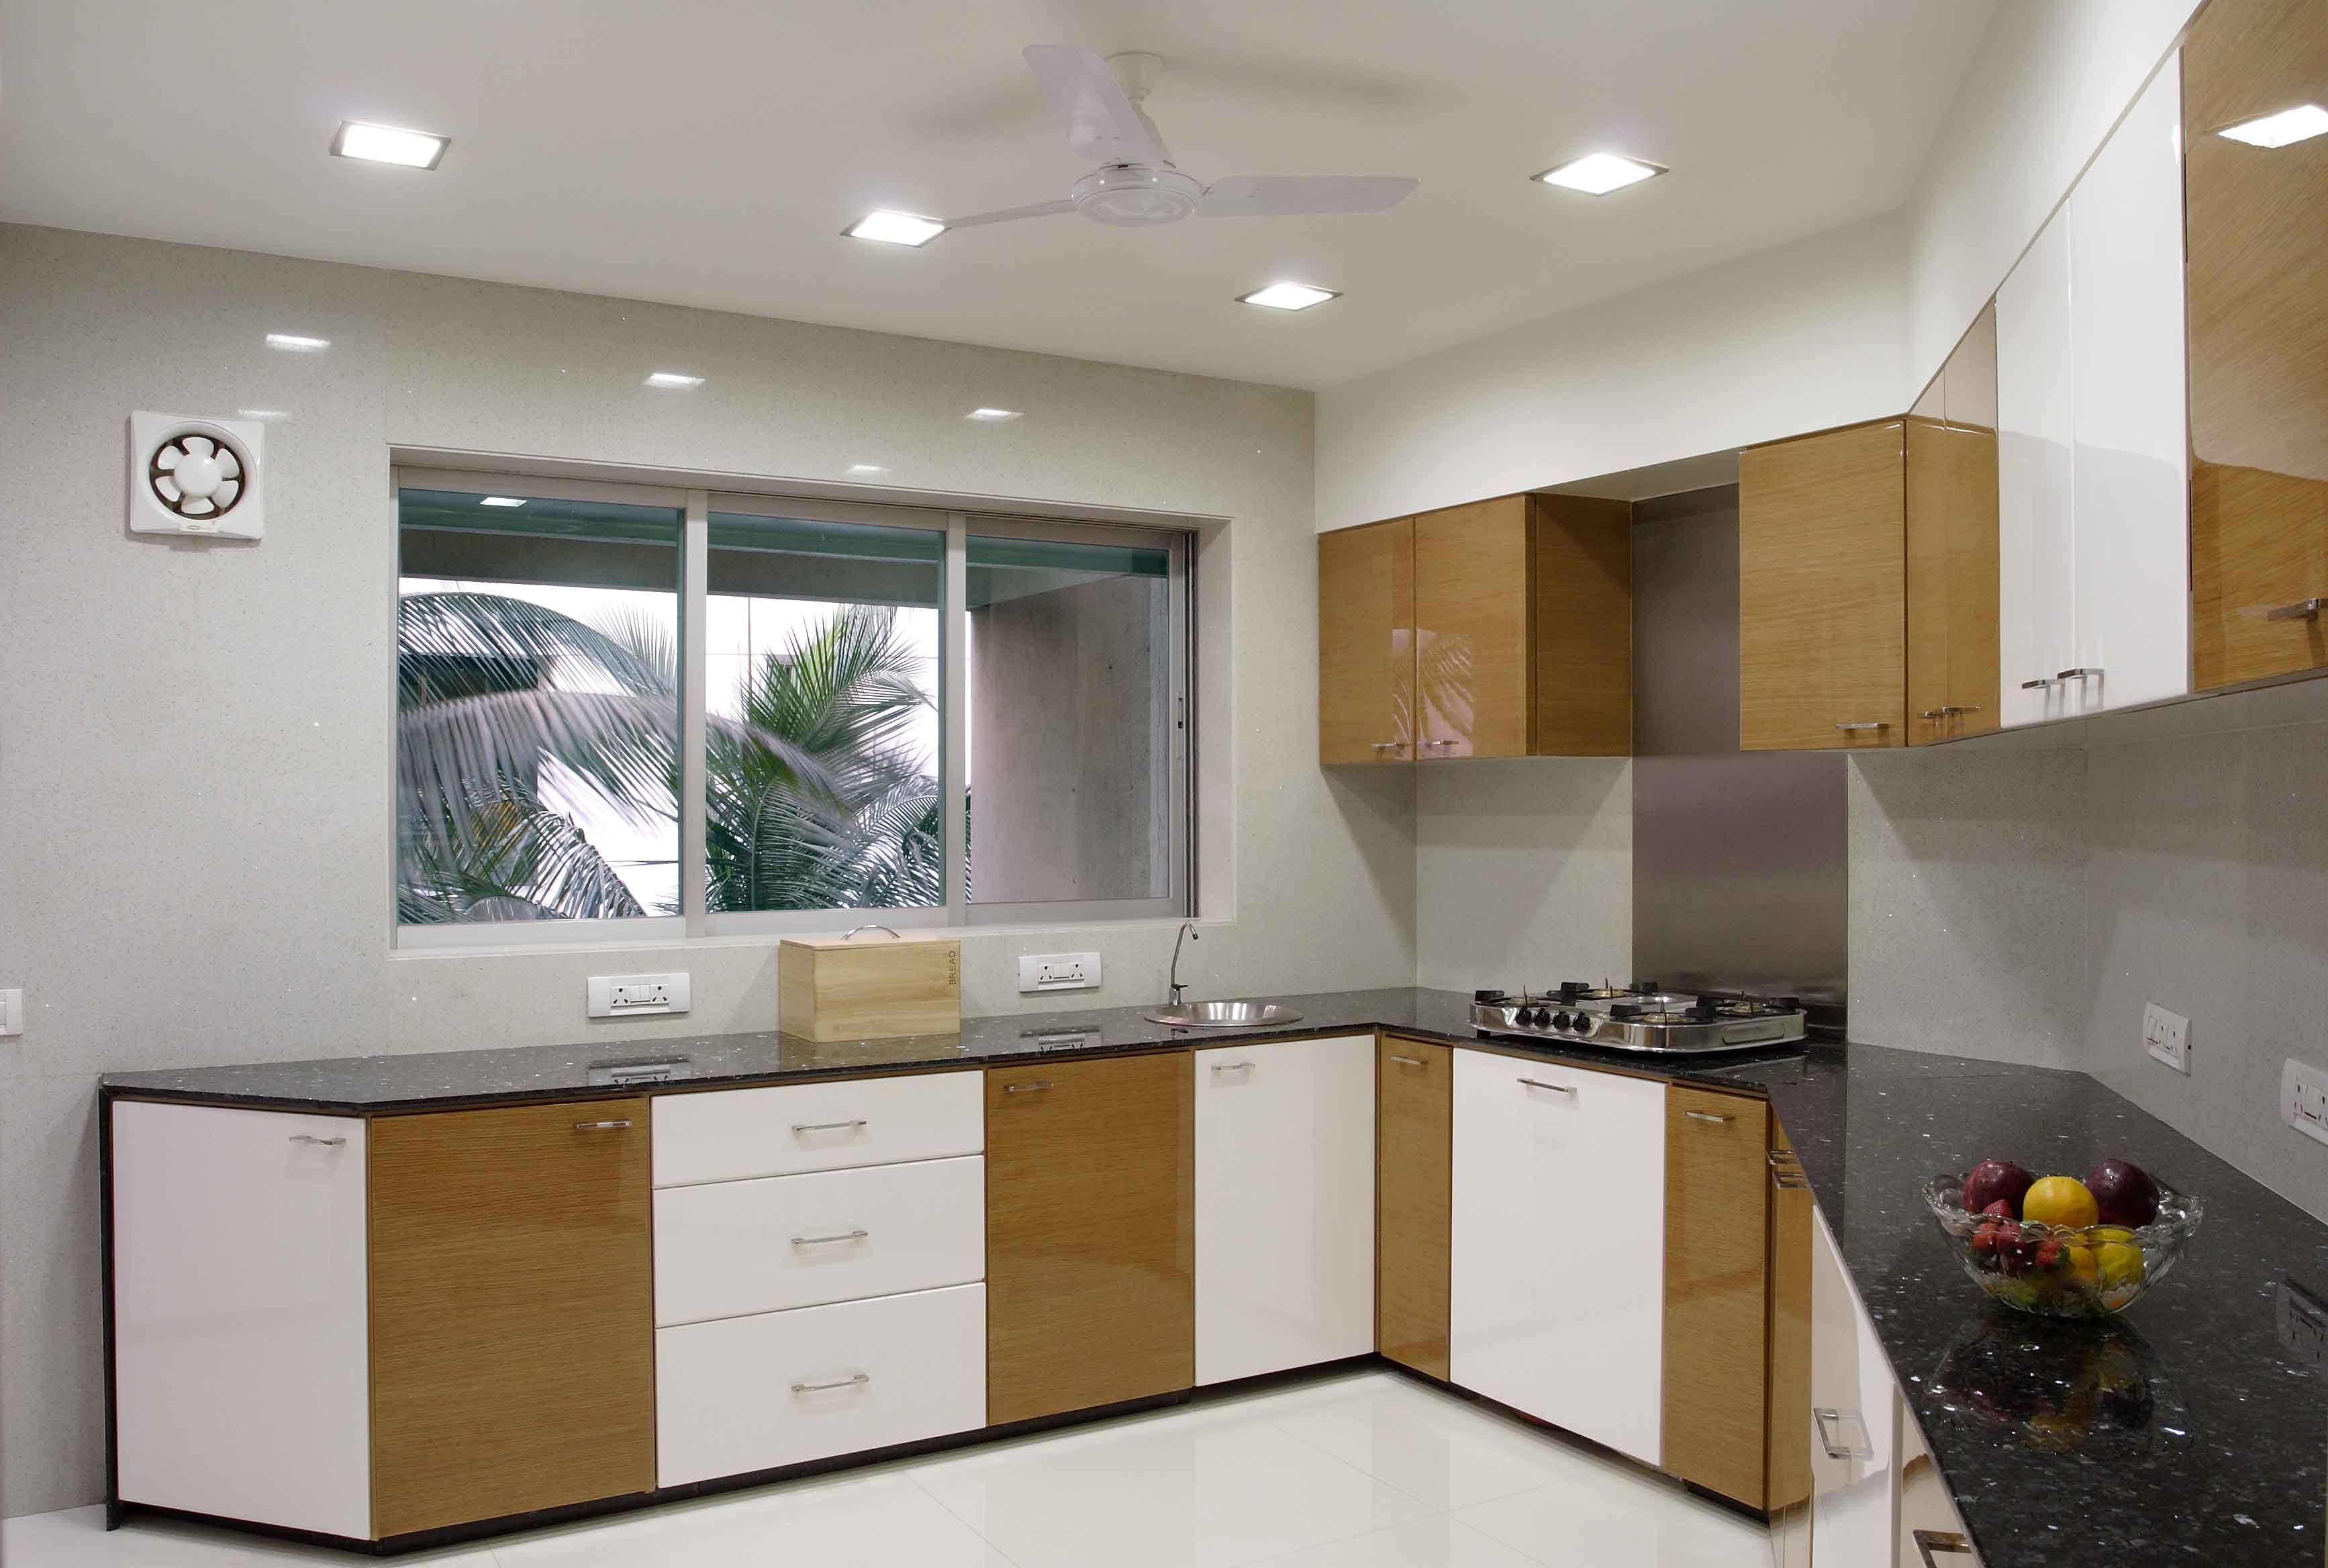 Hall Interior Design Ideas With Images Simple Kitchen Design